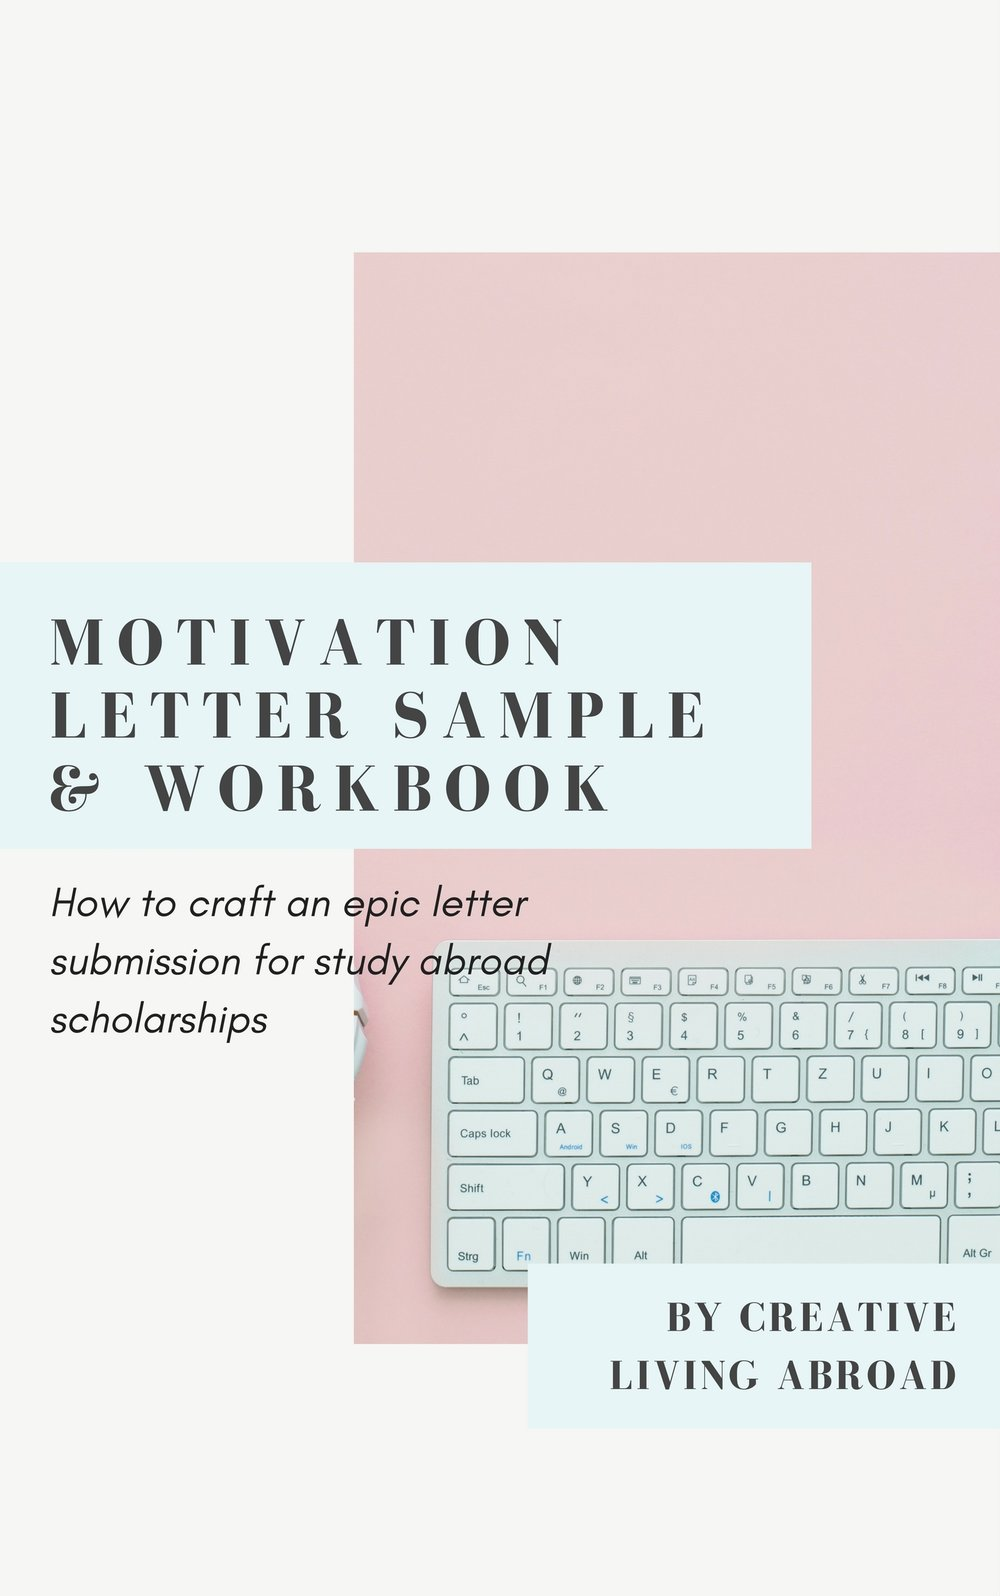 motivation letter scholarships sample and workbook